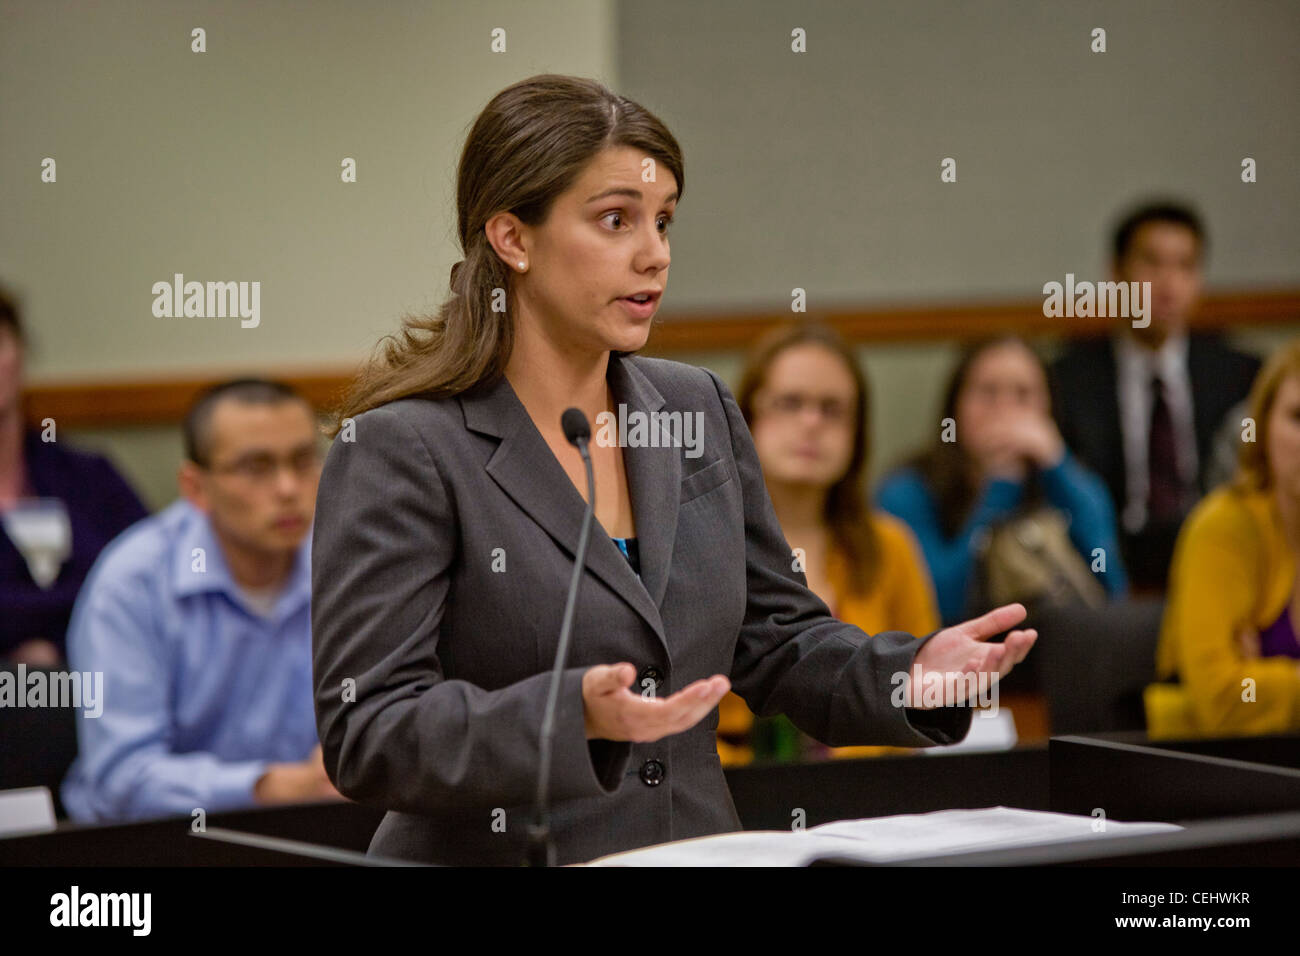 A student at the law school of the University of California at Irvine addresses a panel of judges at the moot court - Stock Image